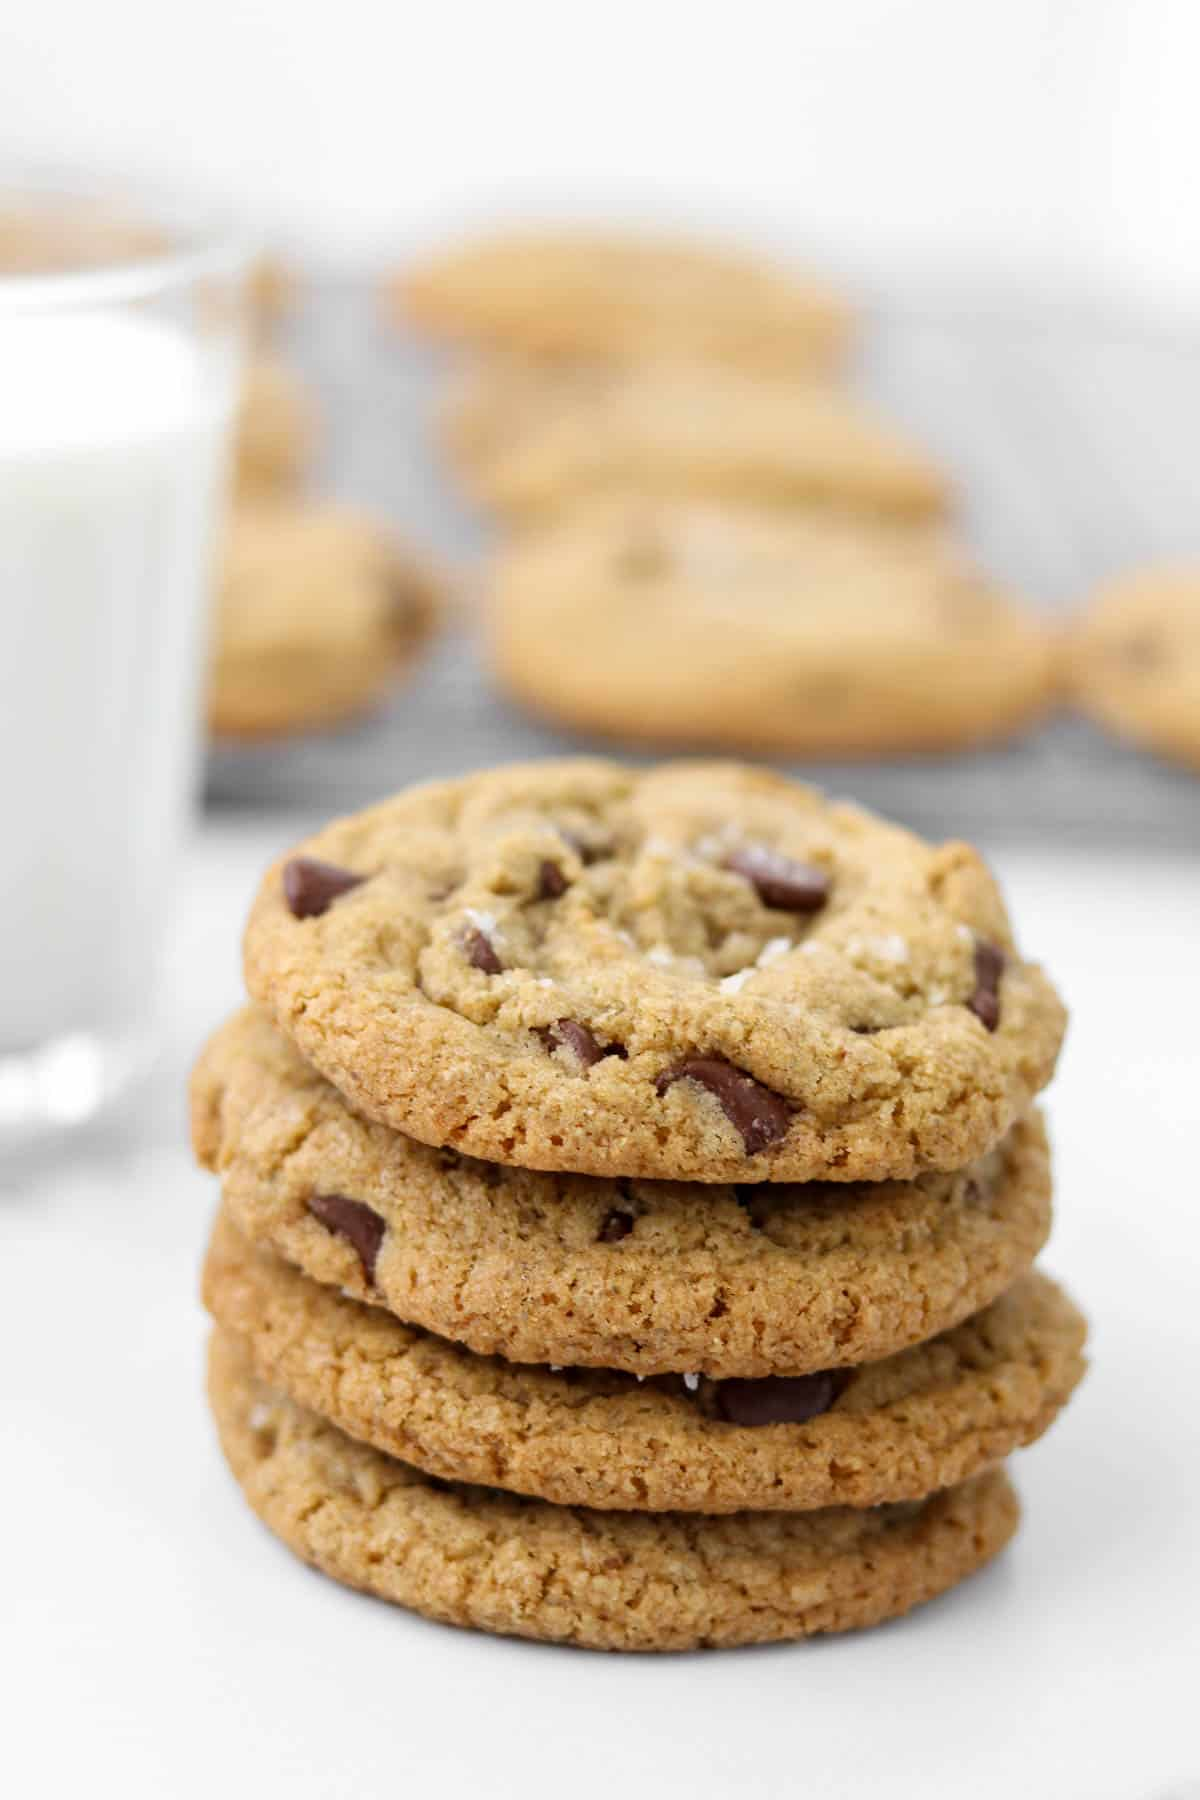 A stack of four chocolate chip cookies with a glass of milk.